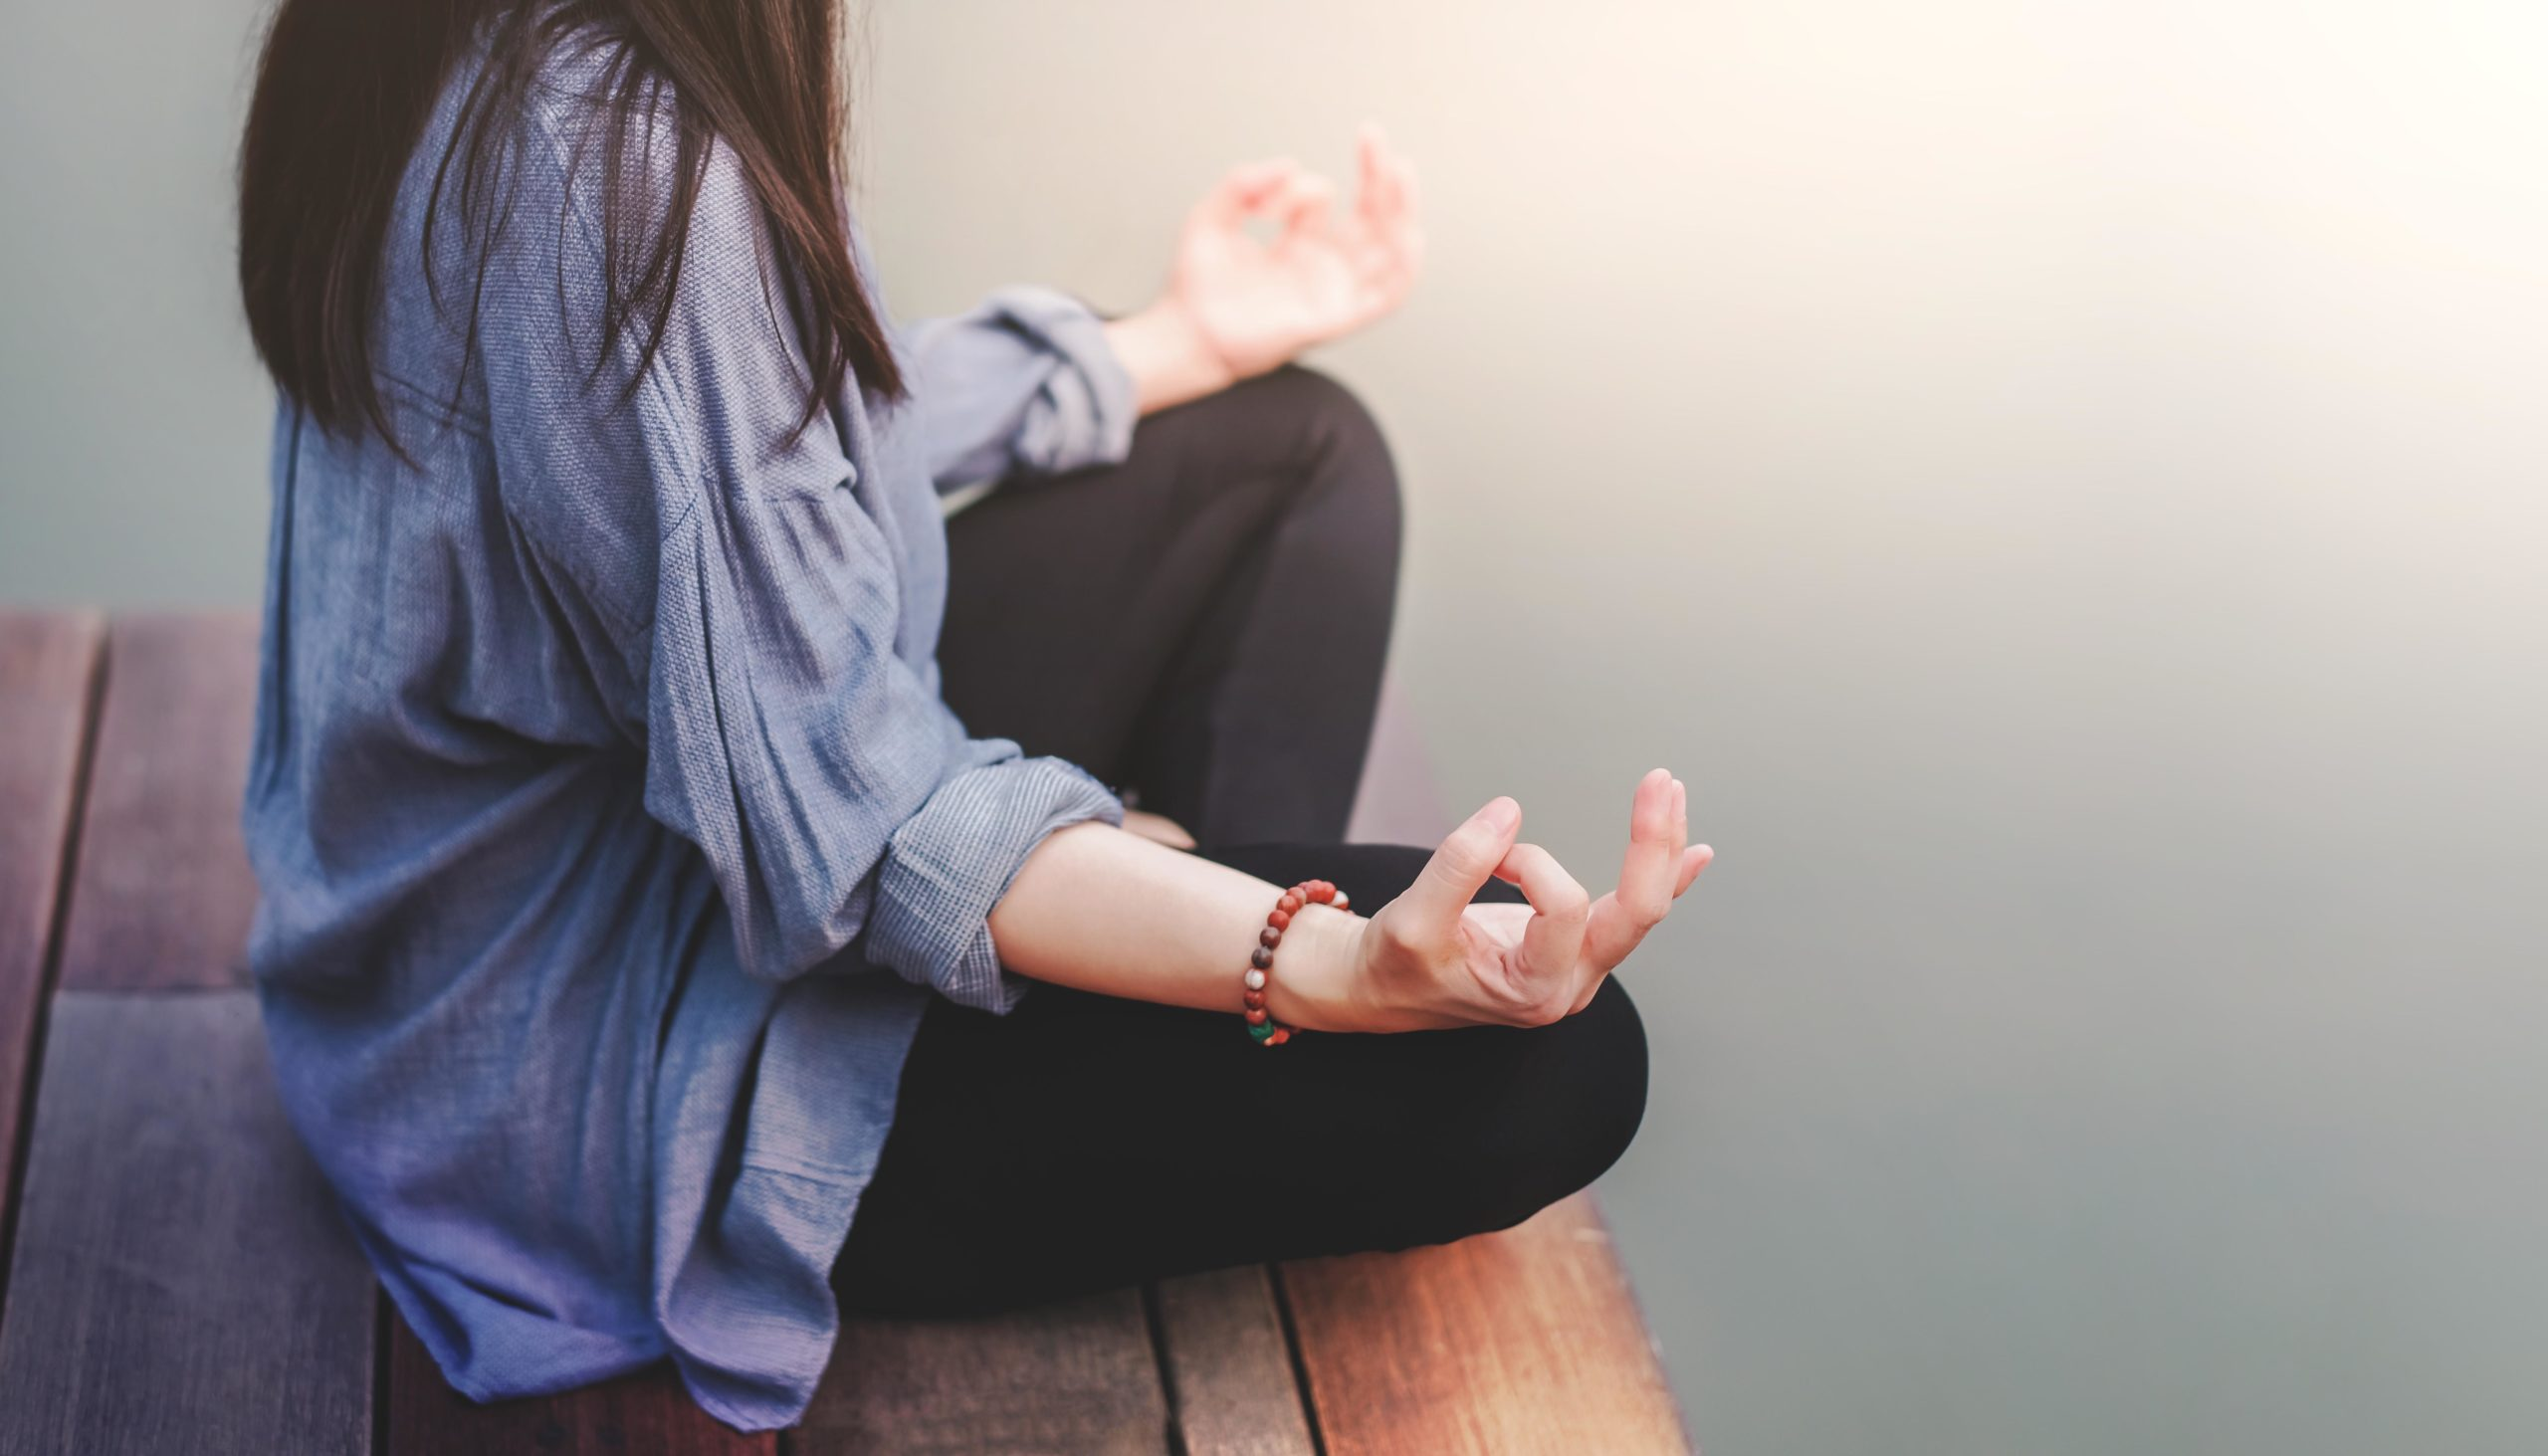 Young Woman Practices Yoga in Outdoor. Sitting in Lotus Position